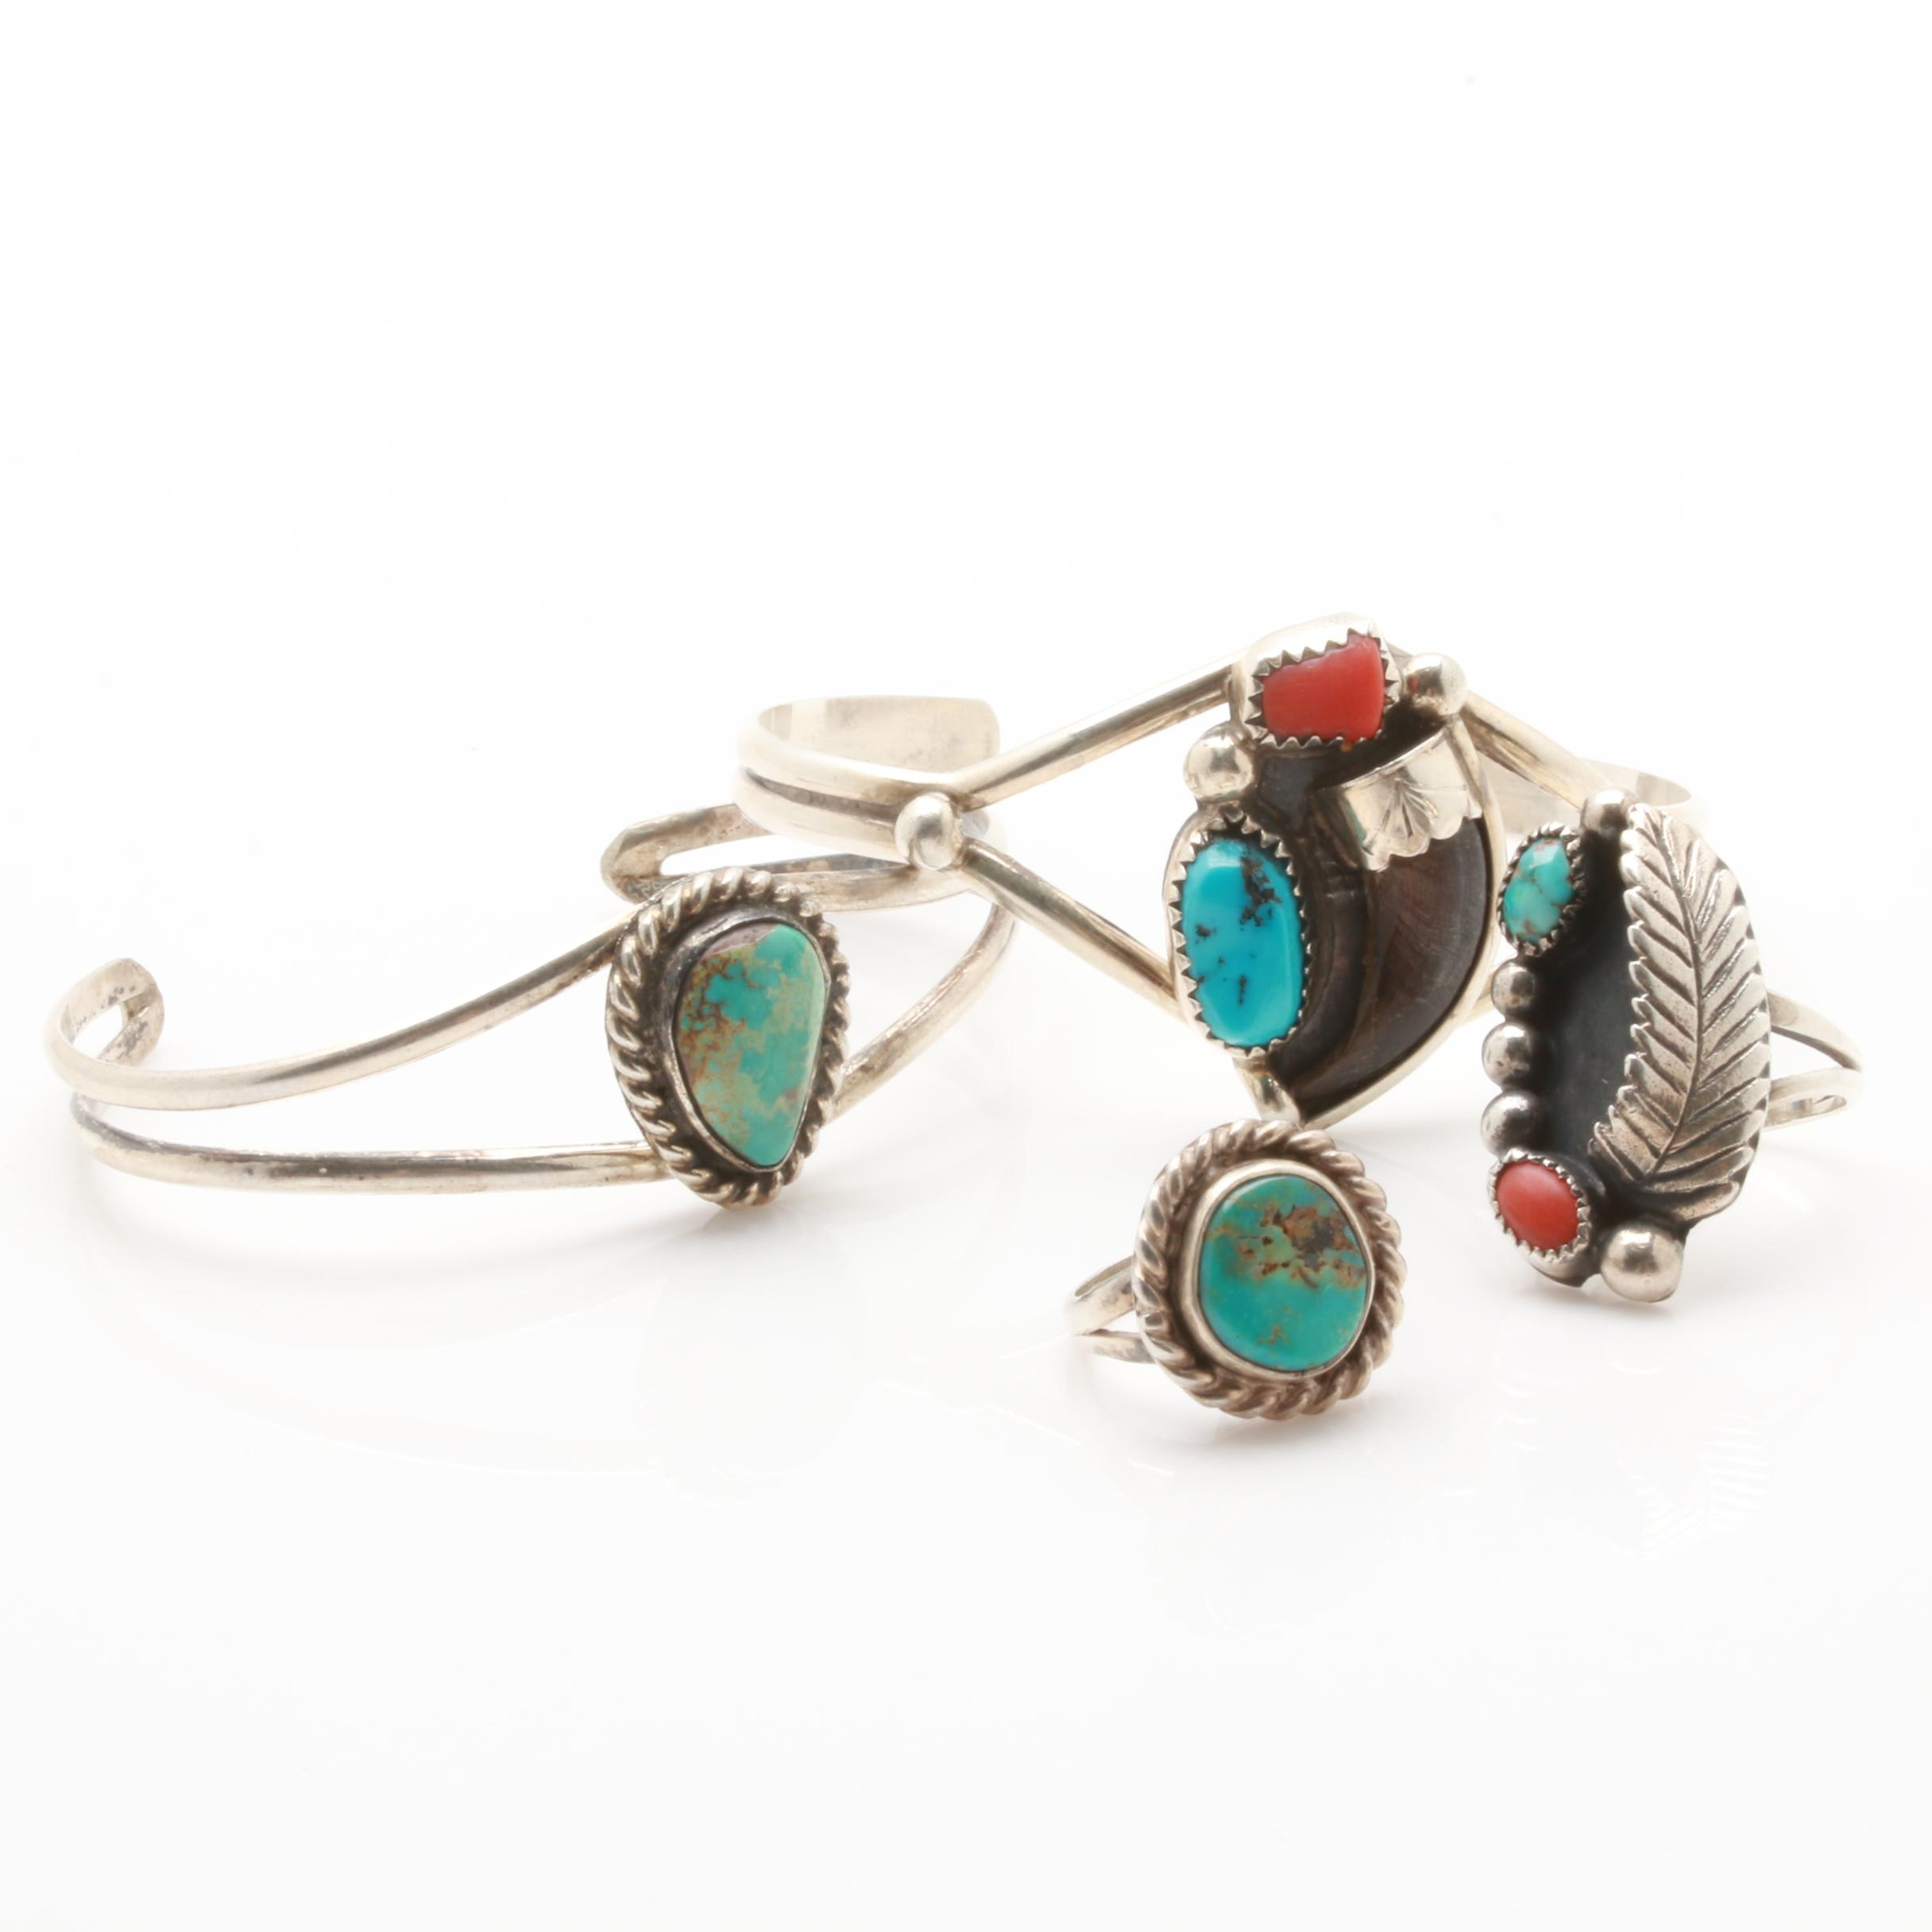 Howard Esalio Zuni Sterling Silver Turquoise and Coral Bracelet with Jewelry